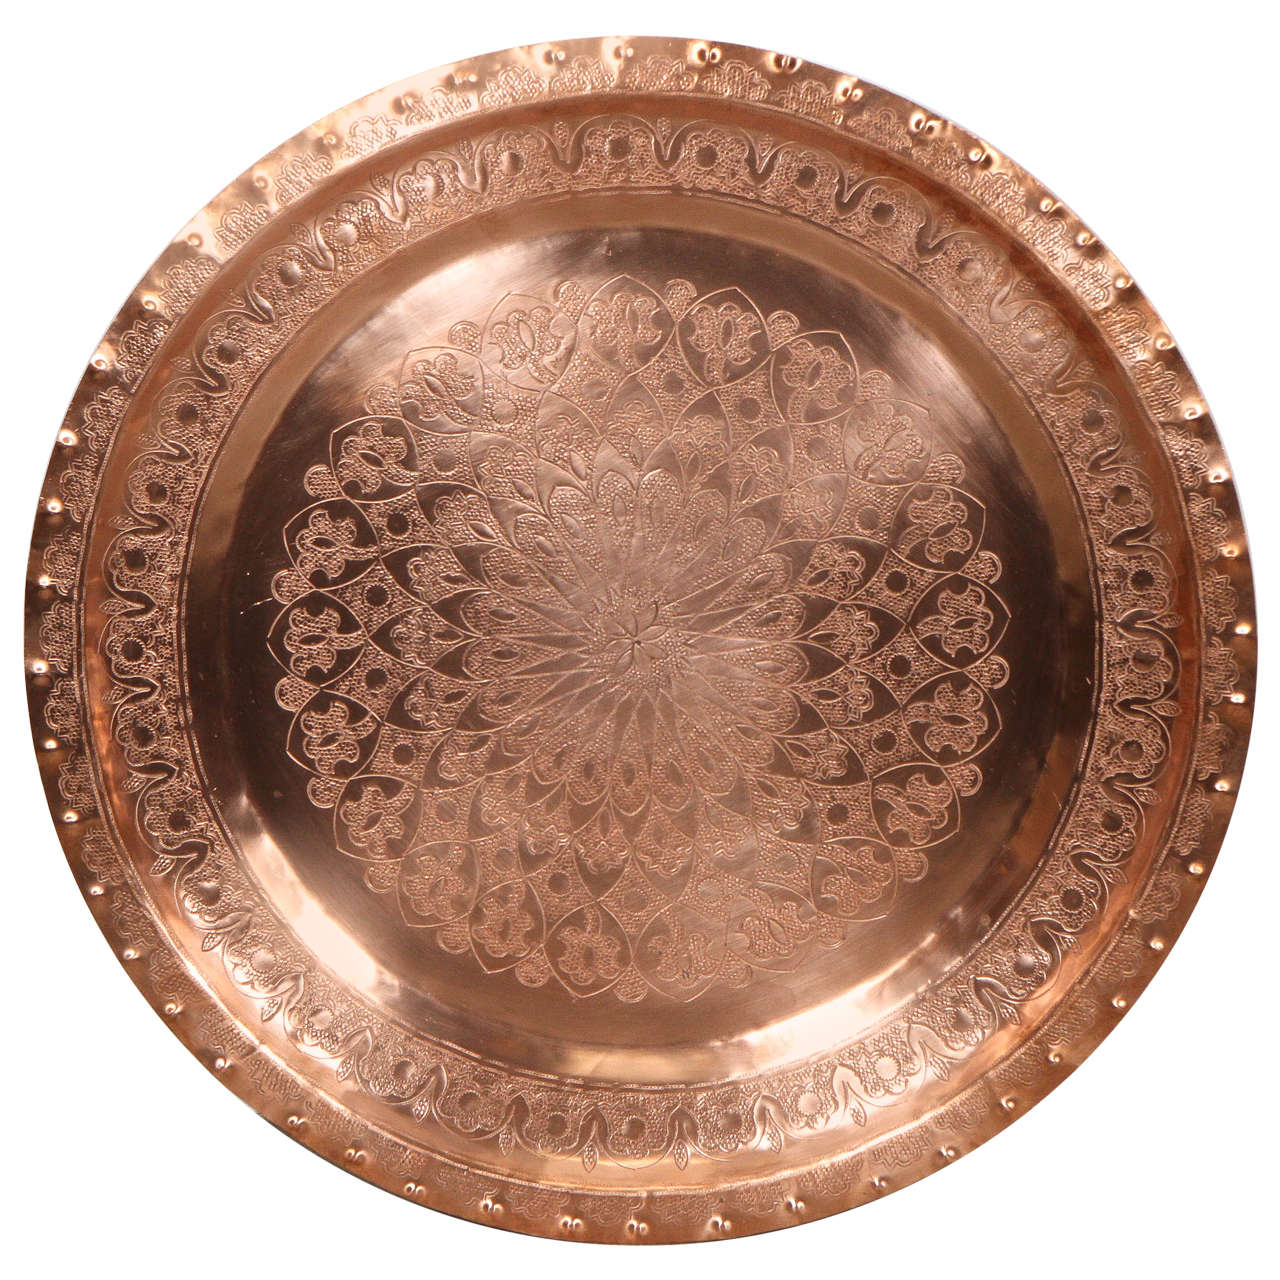 Large Antique Moroccan Copper Tray For Sale at 1stdibs : X from www.1stdibs.com size 1280 x 1280 jpeg 251kB